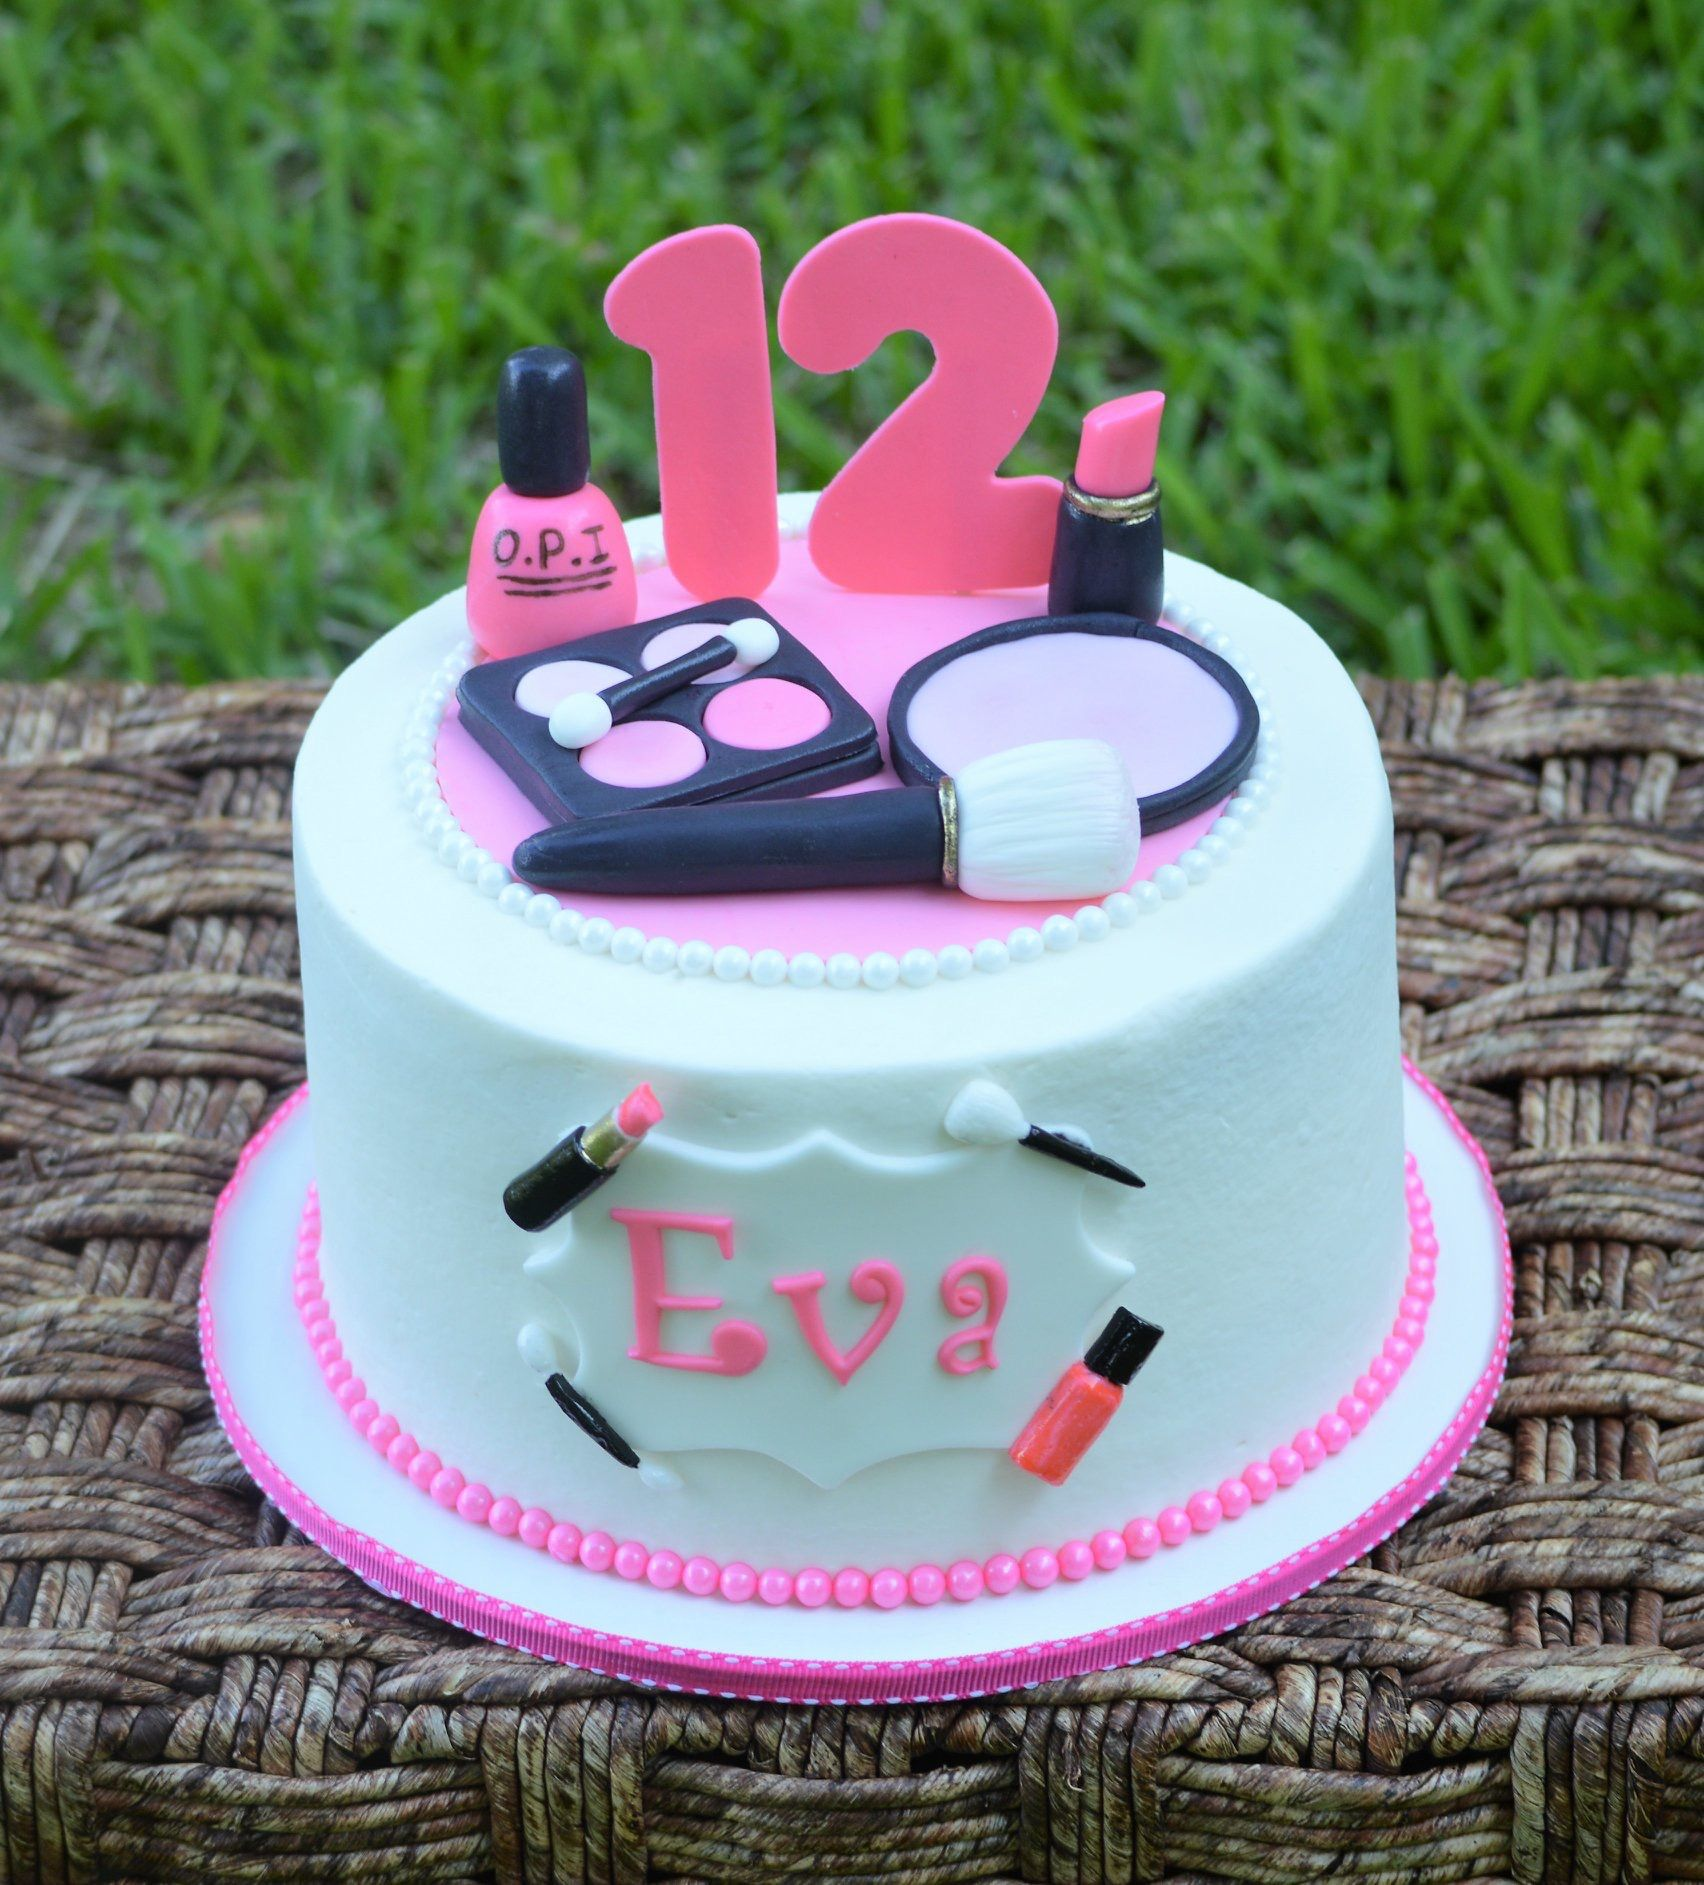 Pink makeup cake made by Little Lady Cakery. White almond